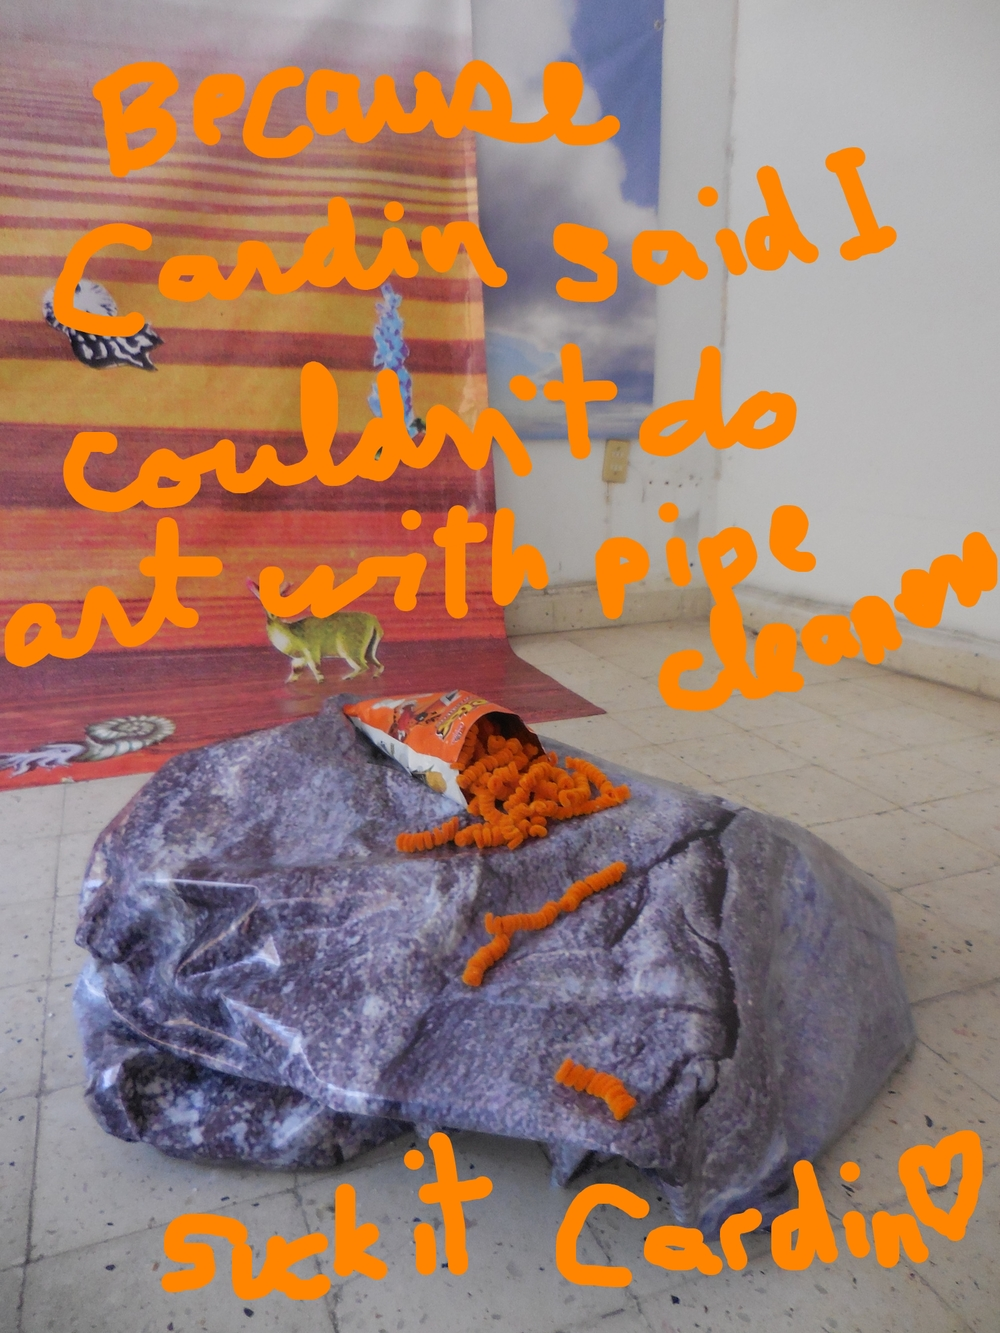 Cheetos,  pipe cleaners and a bag of cheetos. Rock by Mathieu Cardin, background by David Bellemare.